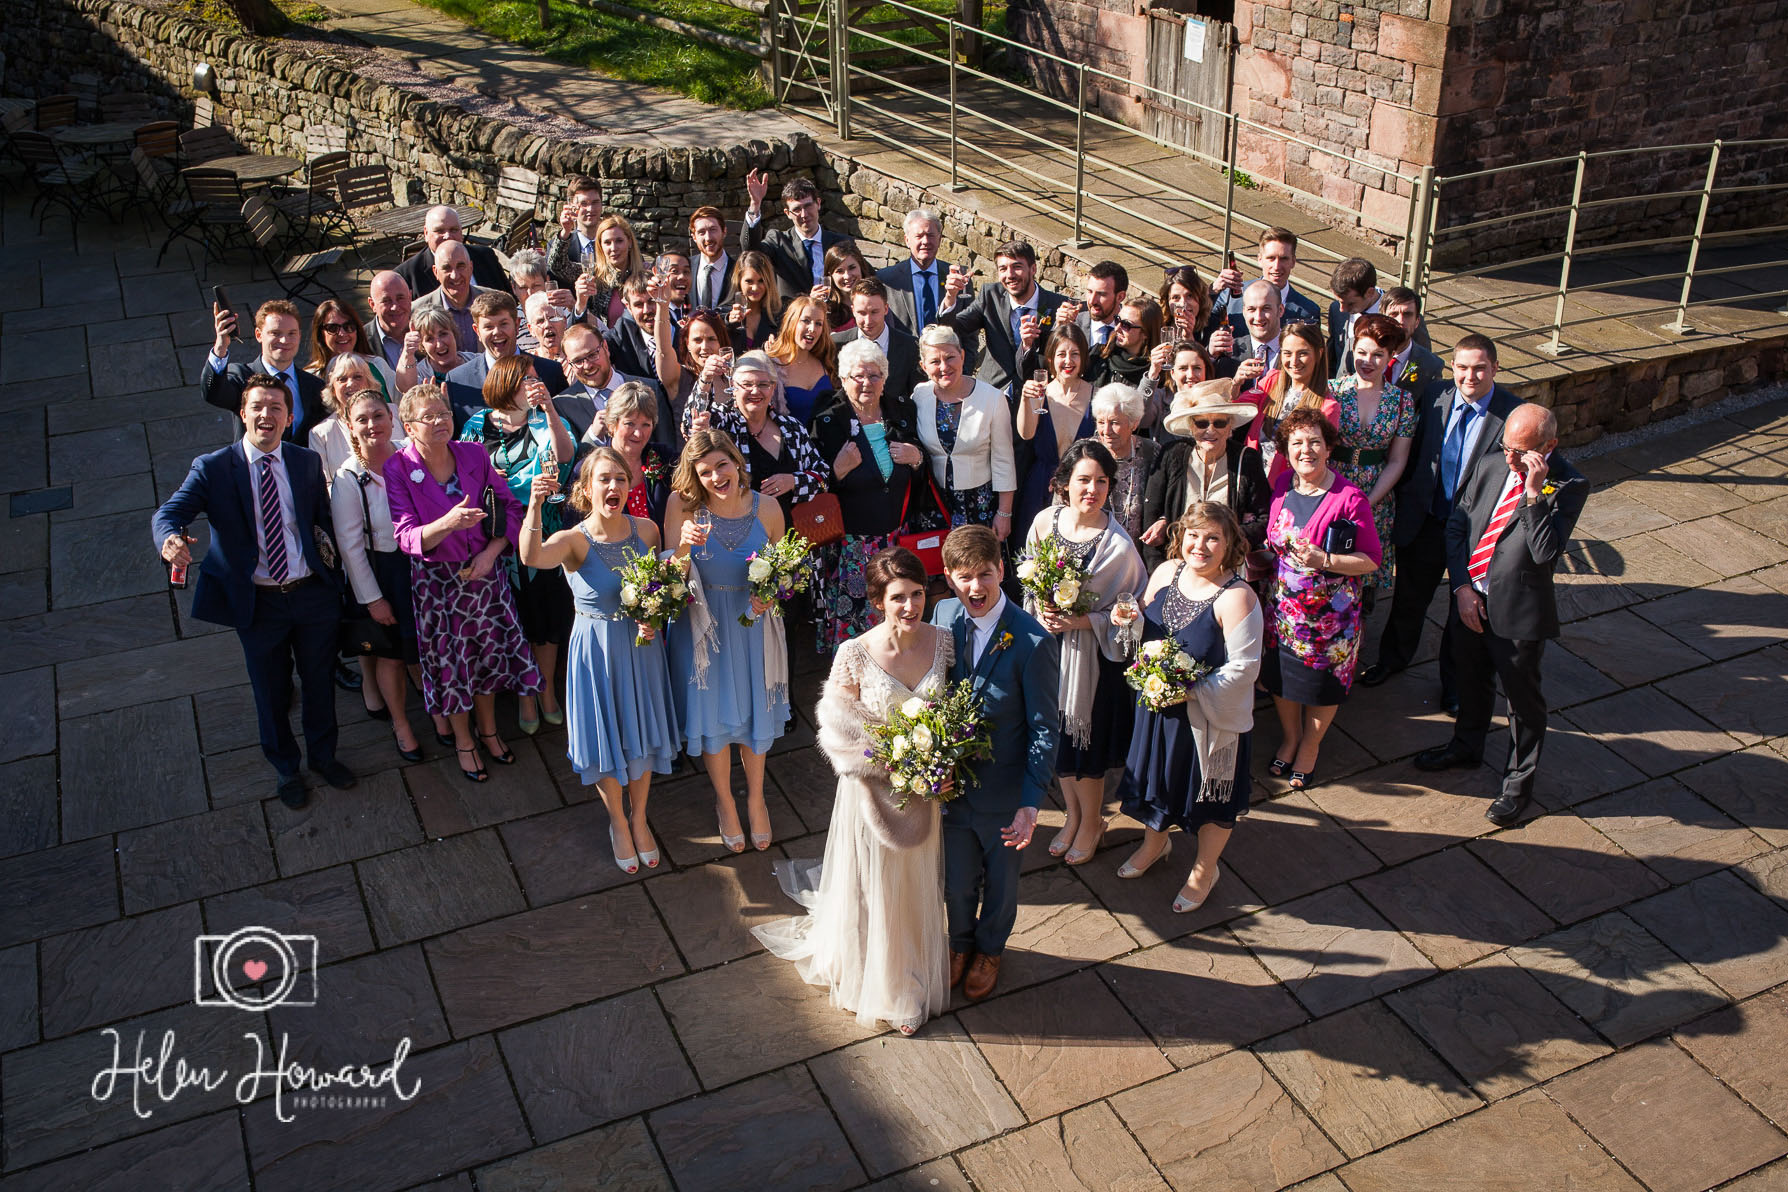 A large Group photo taken from above at The Ashes Wedding Venue in Staffordshire